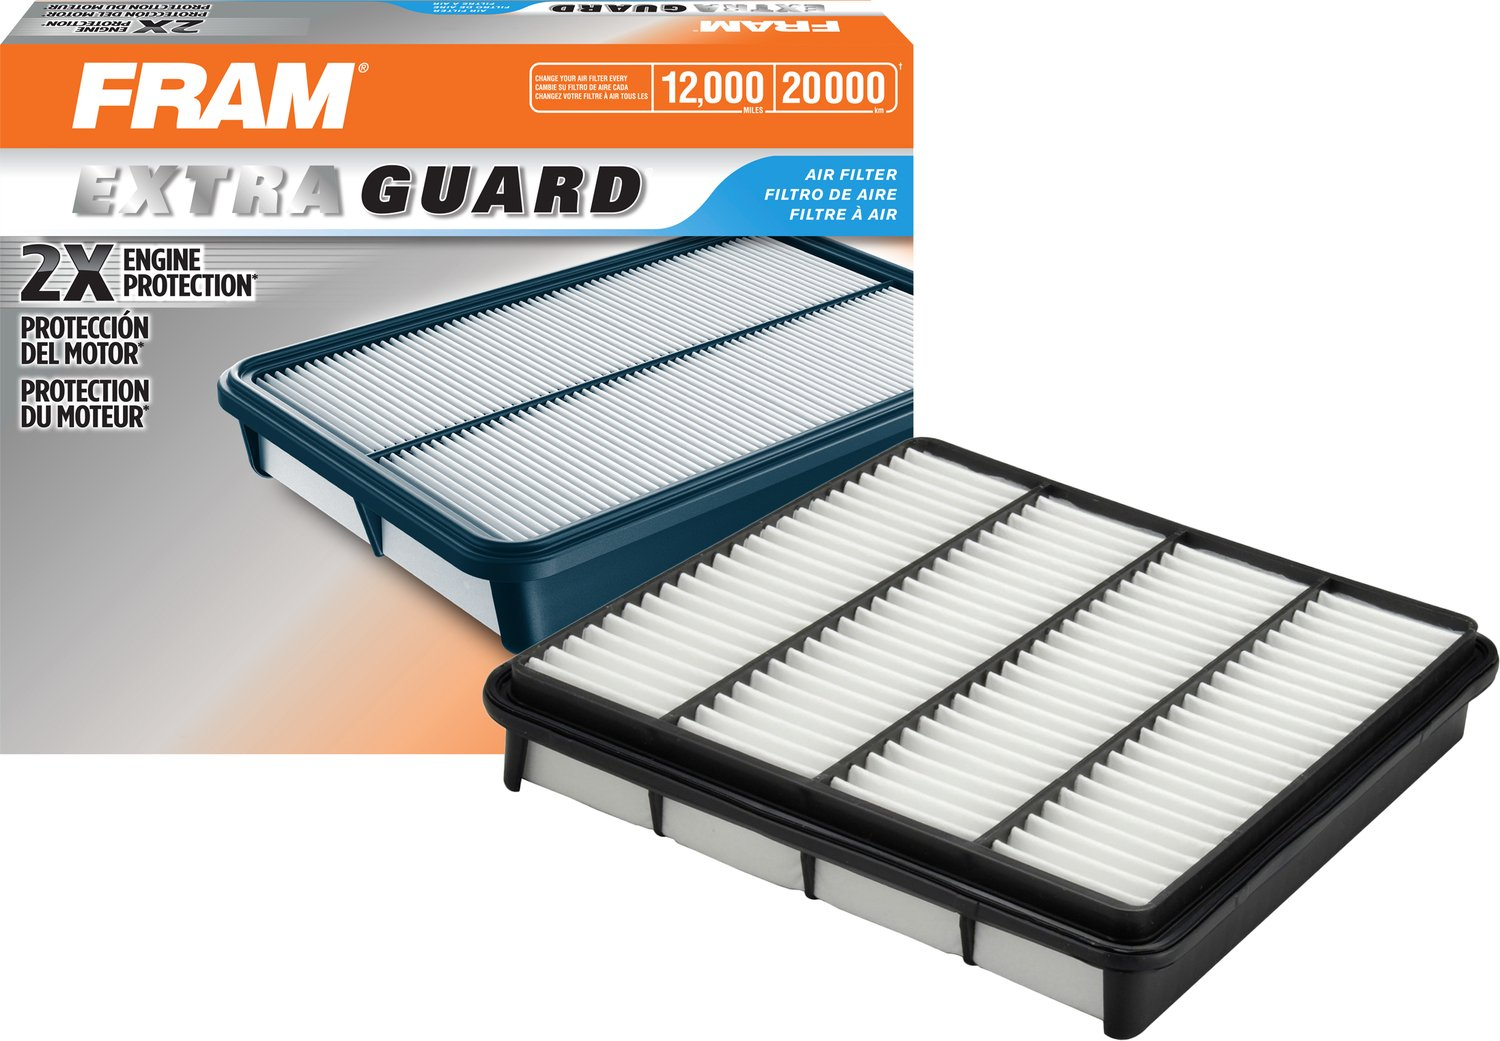 FRAM CA10343 Extra Guard Panel Air Filter FRA:CA10343